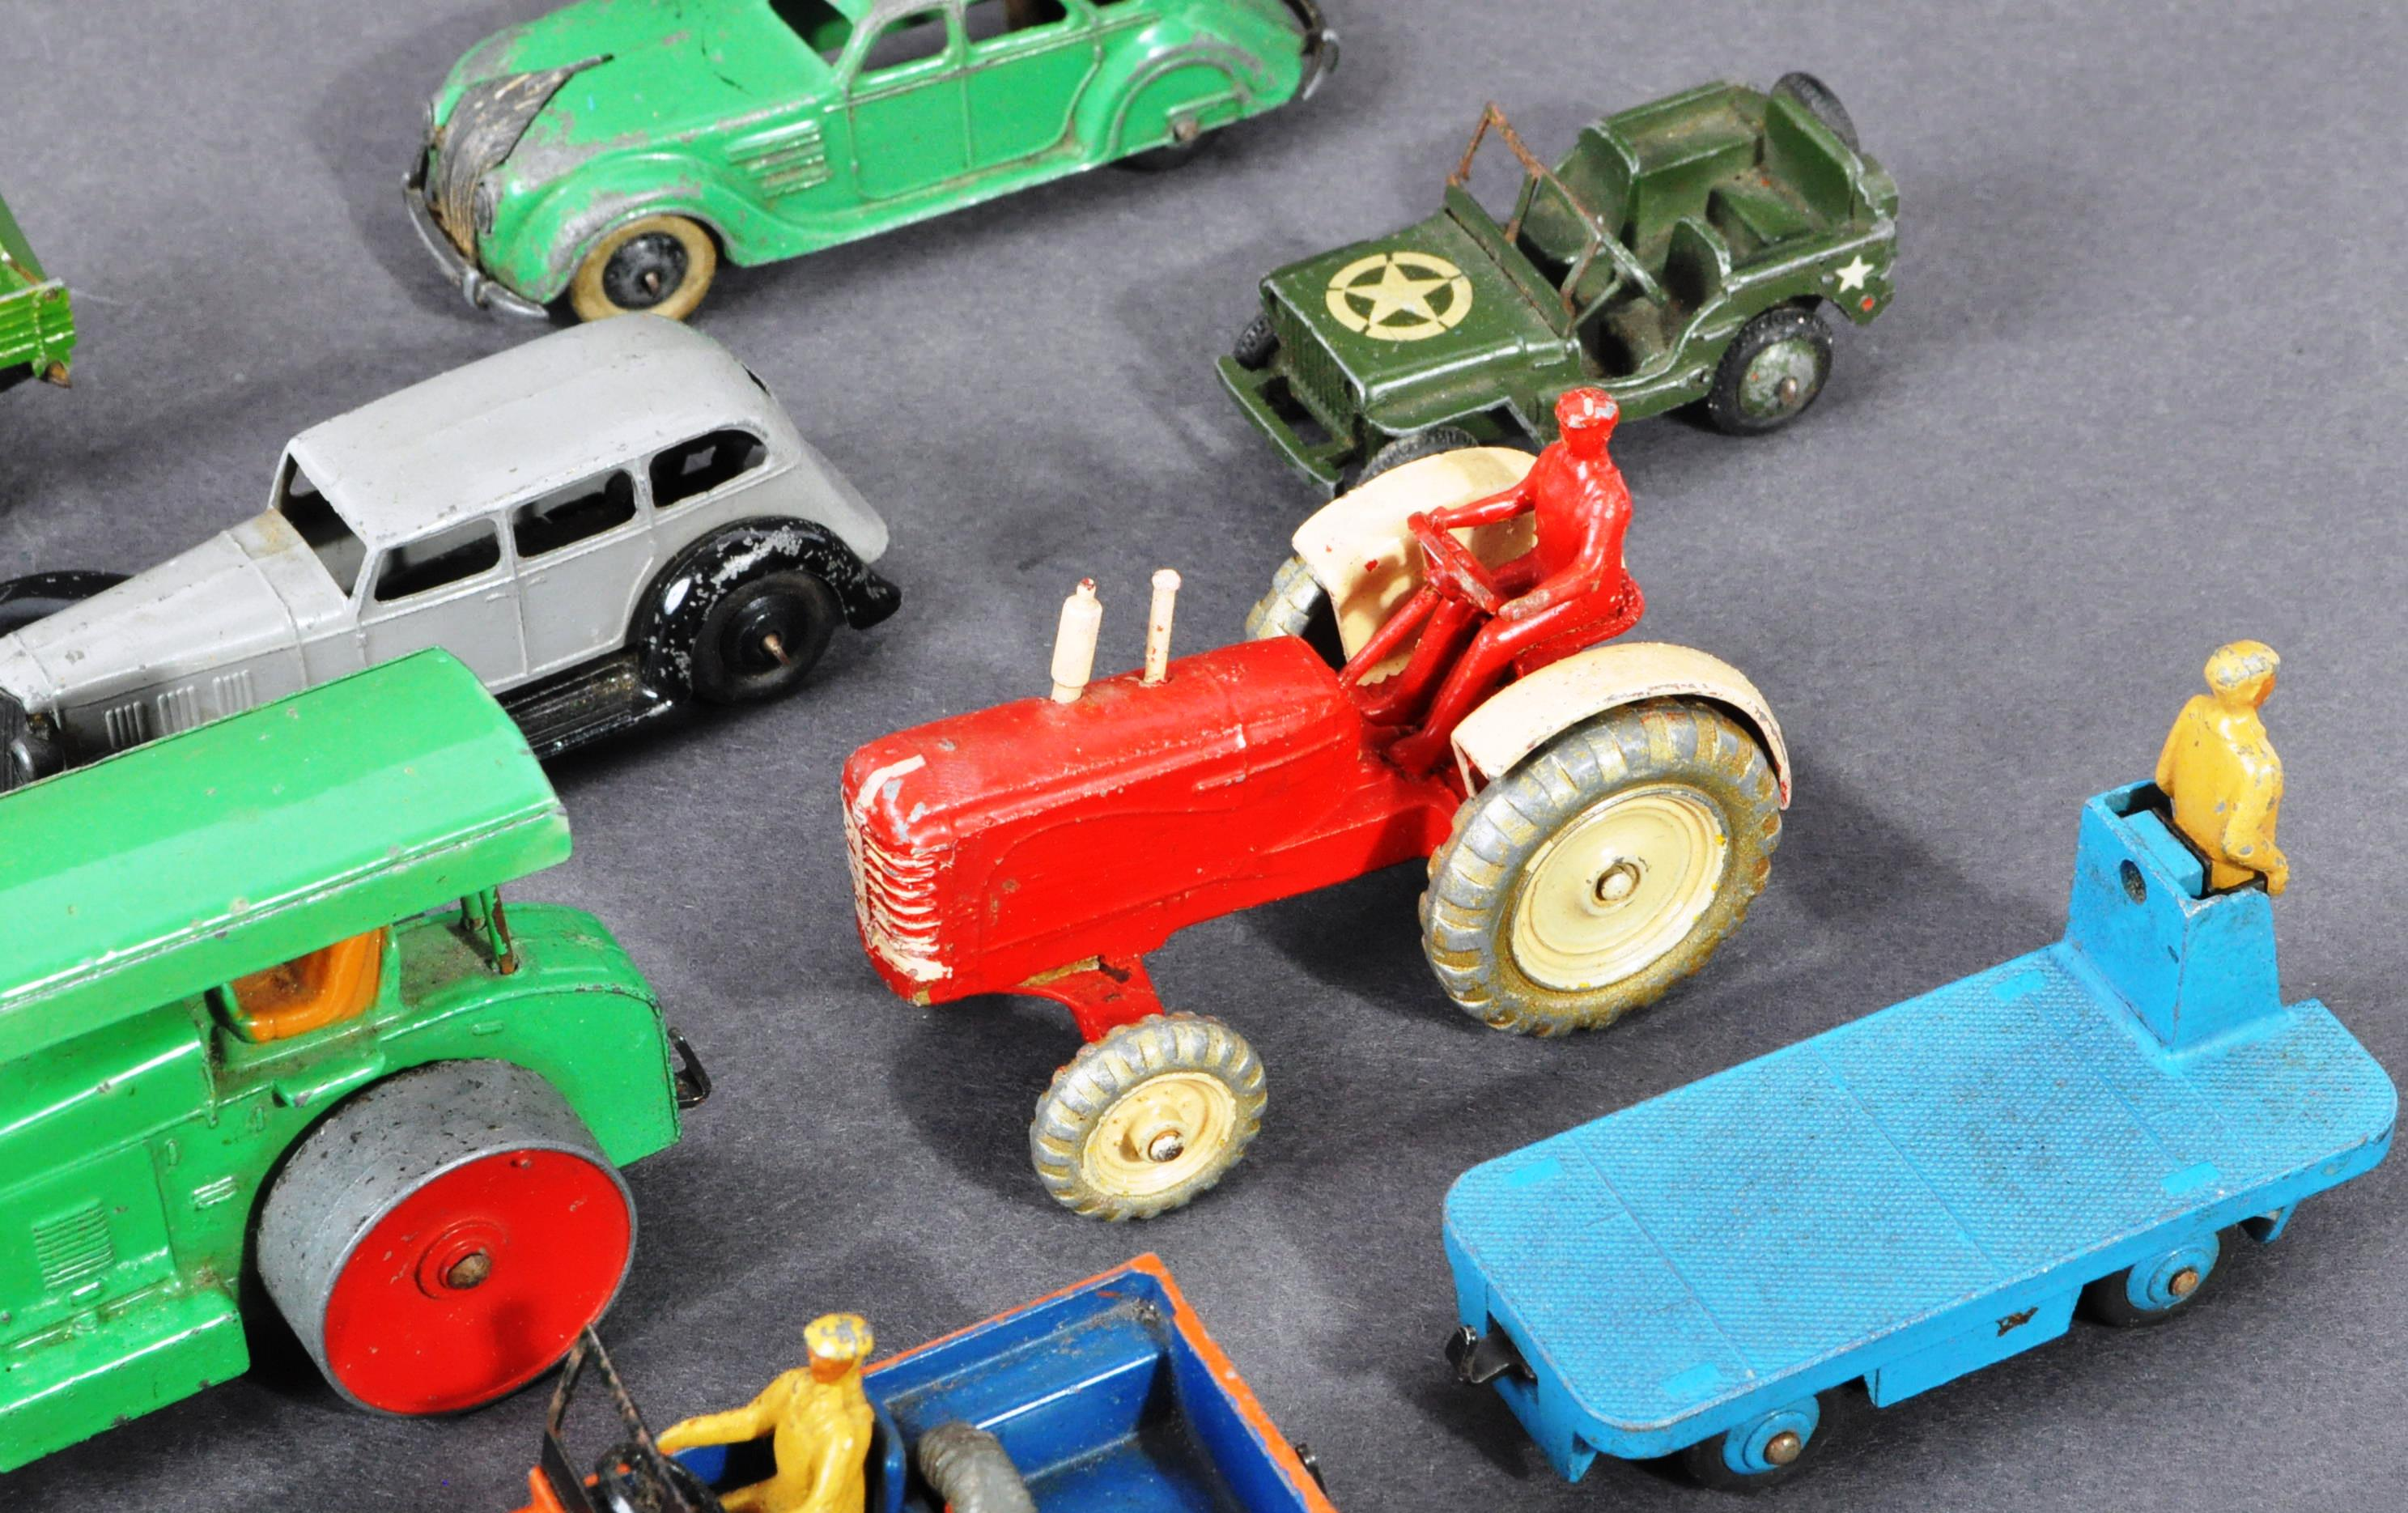 COLLECTION OF ORIGINAL VINTAGE DINKY TOYS DIECAST MODELS - Image 4 of 6